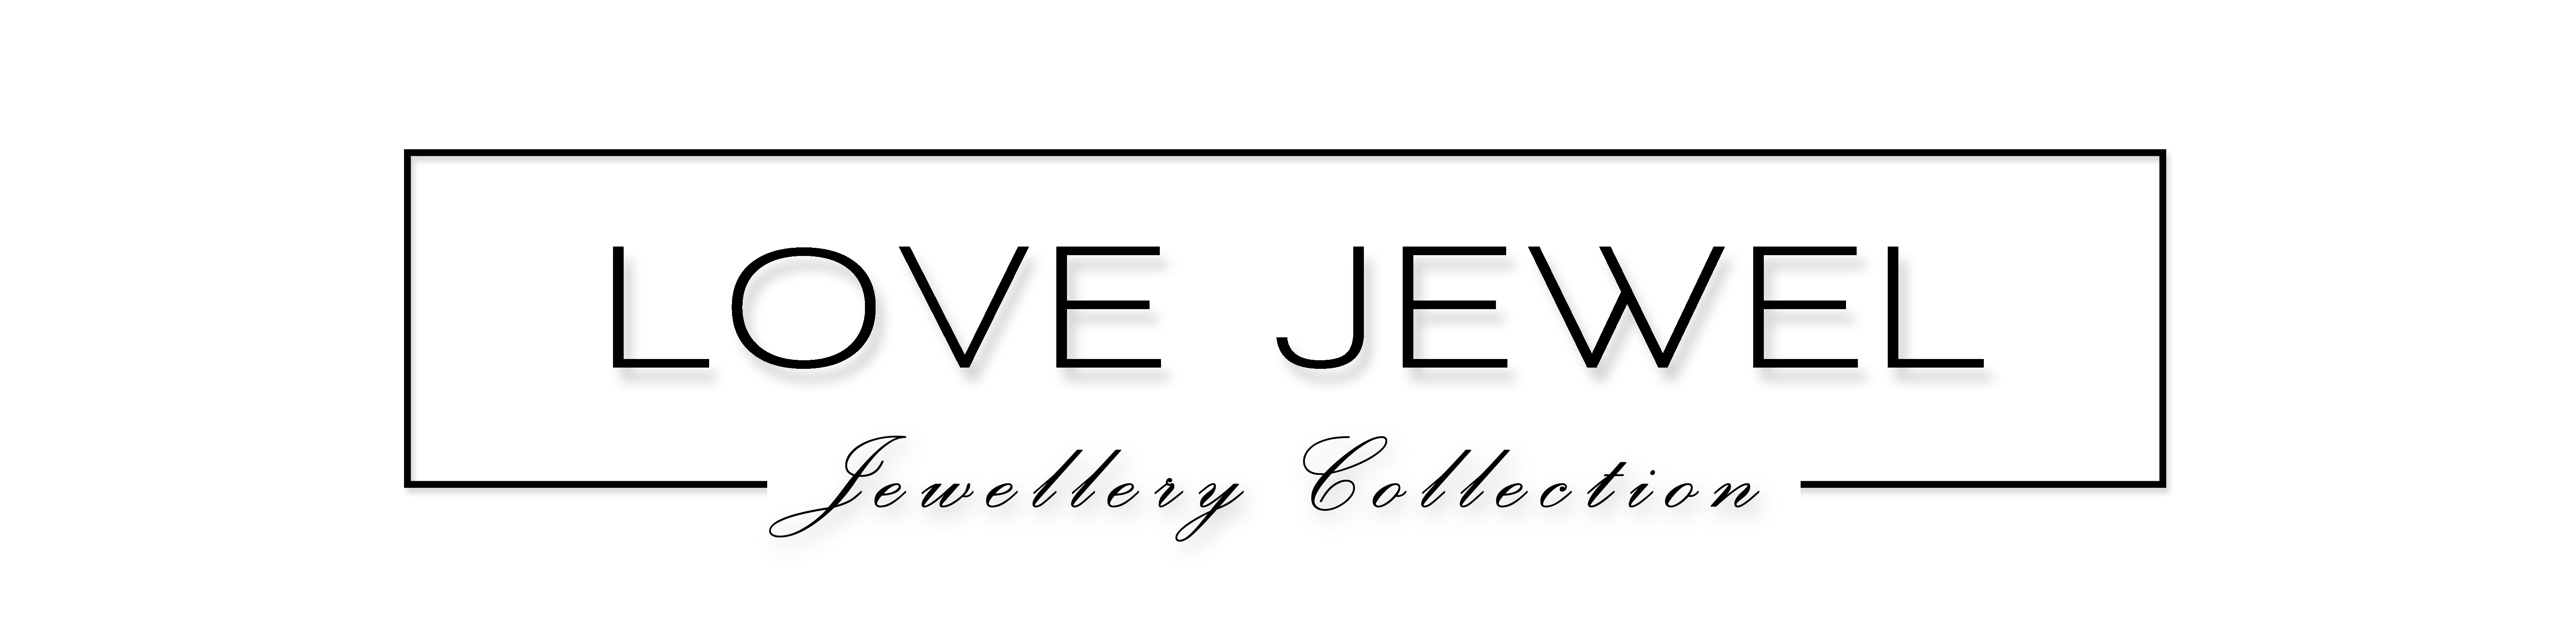 LOVE JEWEL.GR